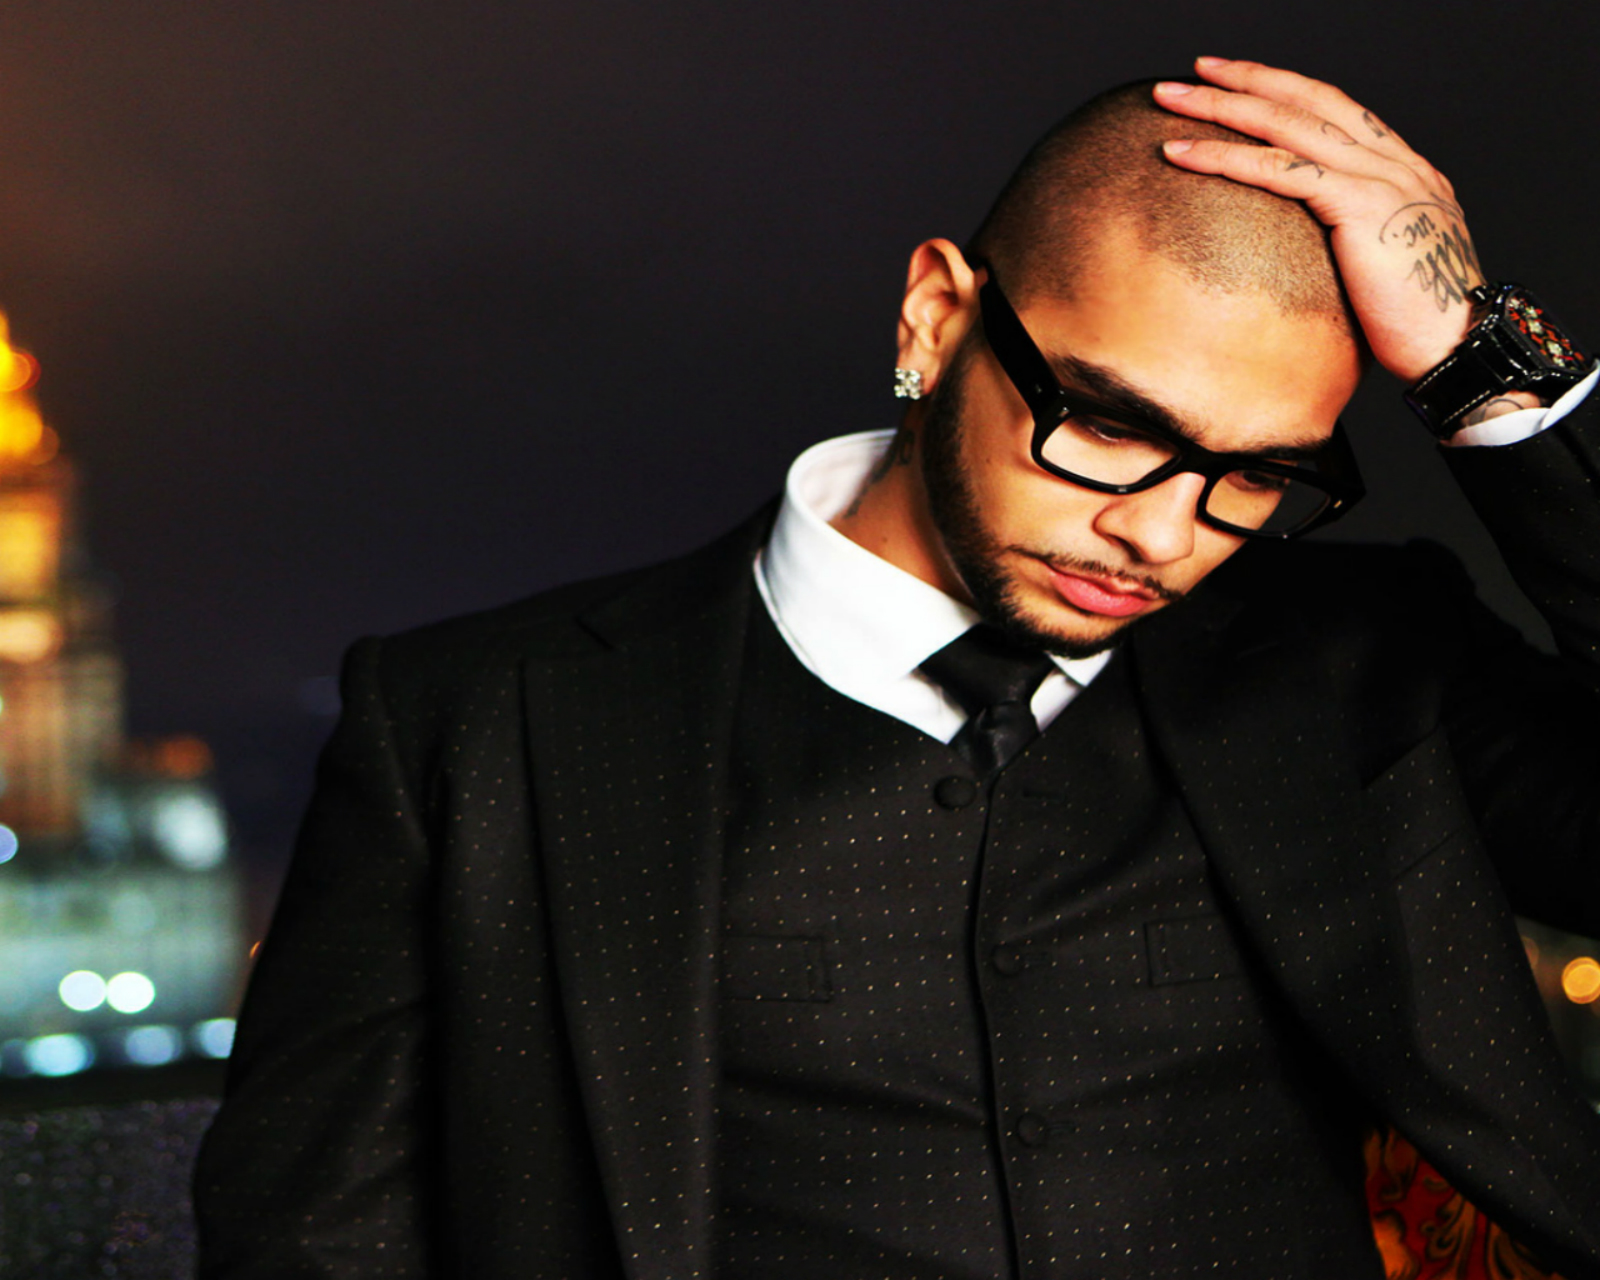 http://3.bp.blogspot.com/-kBJqz94FQ88/T-hd8-bDKgI/AAAAAAAACSo/rmBDLtj7dtQ/s1600/Timati_with_Suit_and_Glasses_HD_Wallpaper-Vvallpaper.Net.jpg